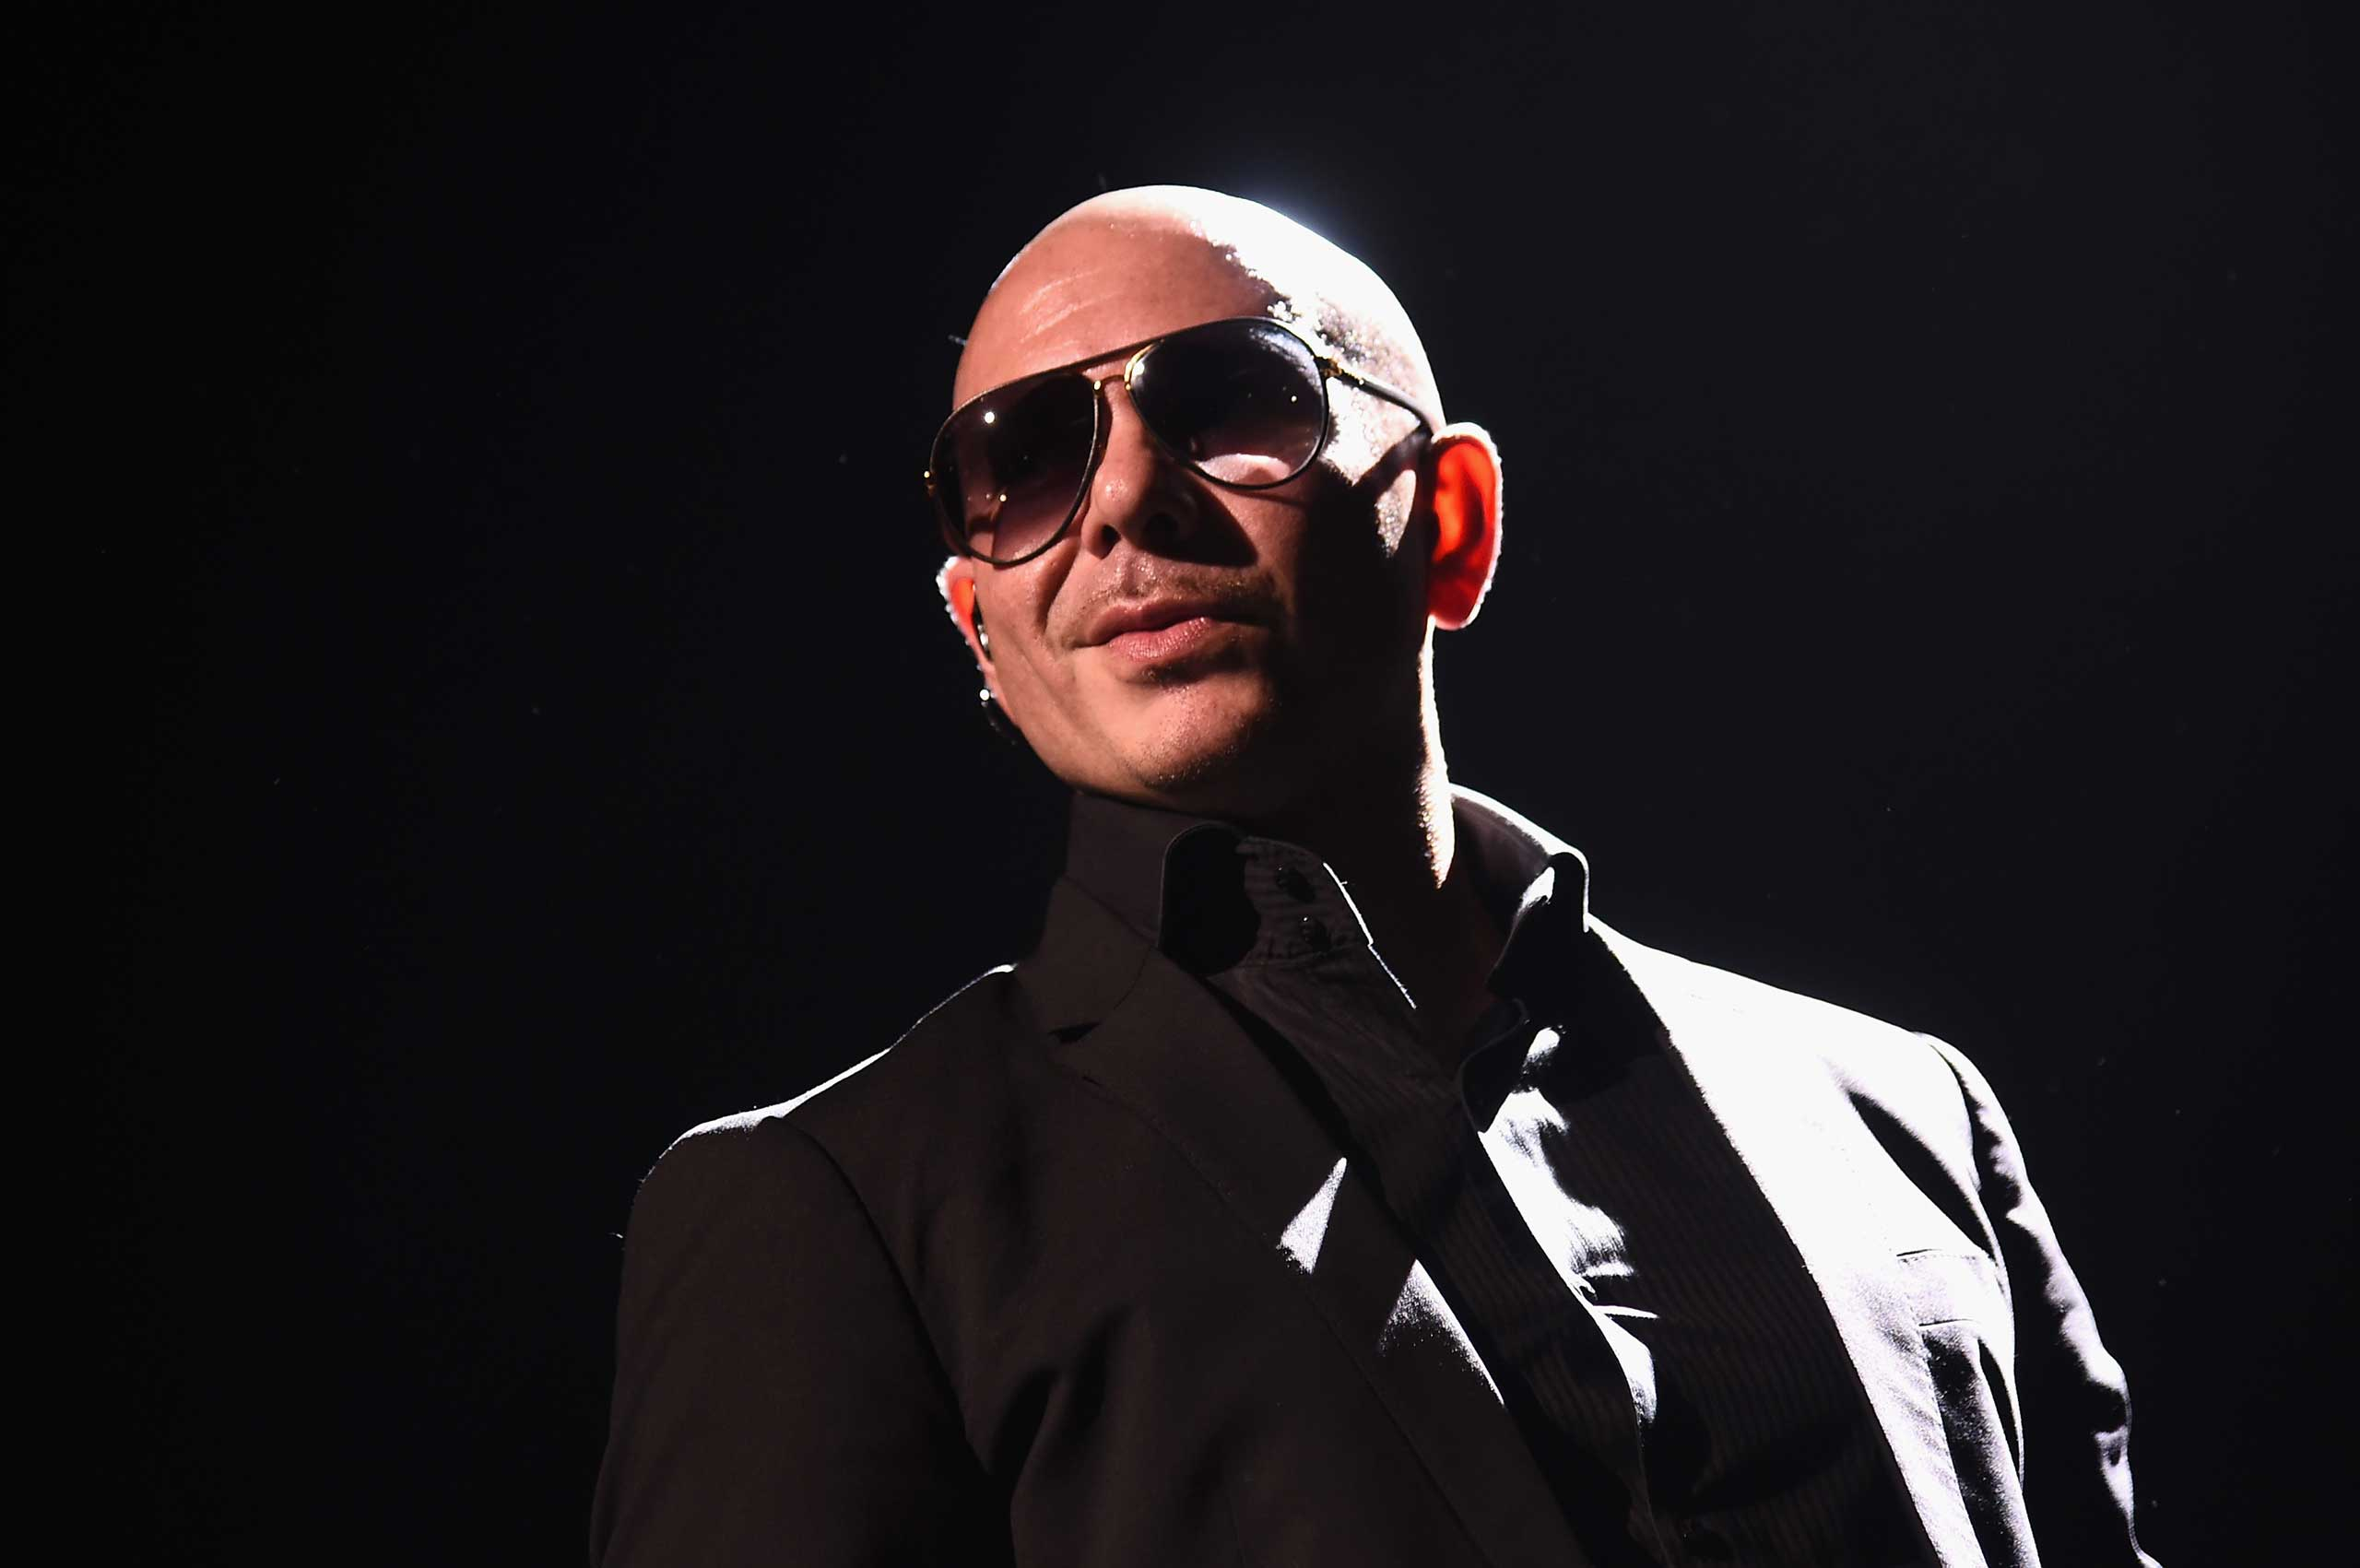 Artist Pitbull performs onstage in New York City, July 19, 2015.